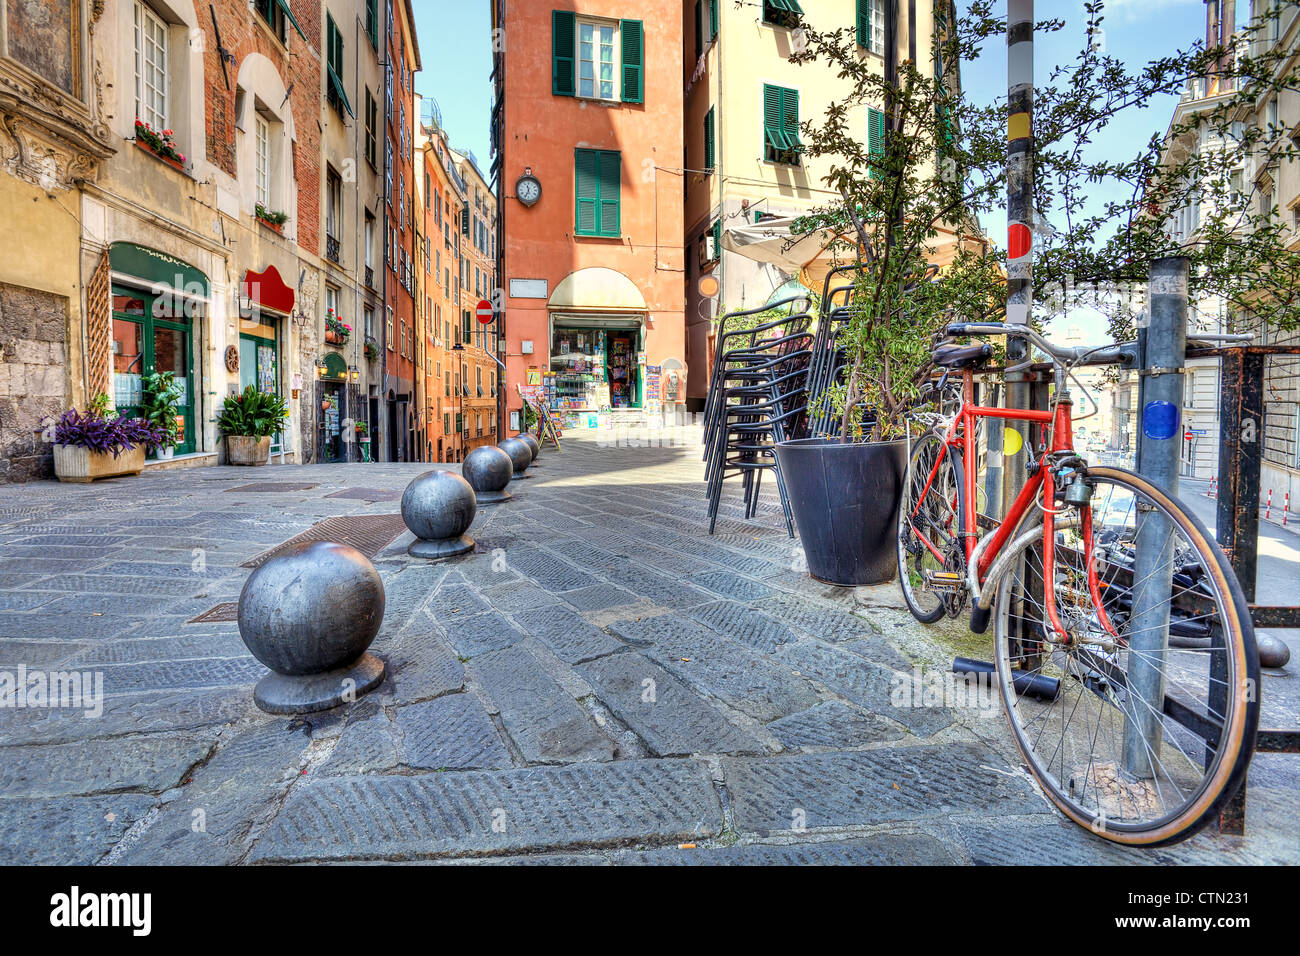 Bicycle and old colorful buildings on background in city of Genoa, Italy. - Stock Image